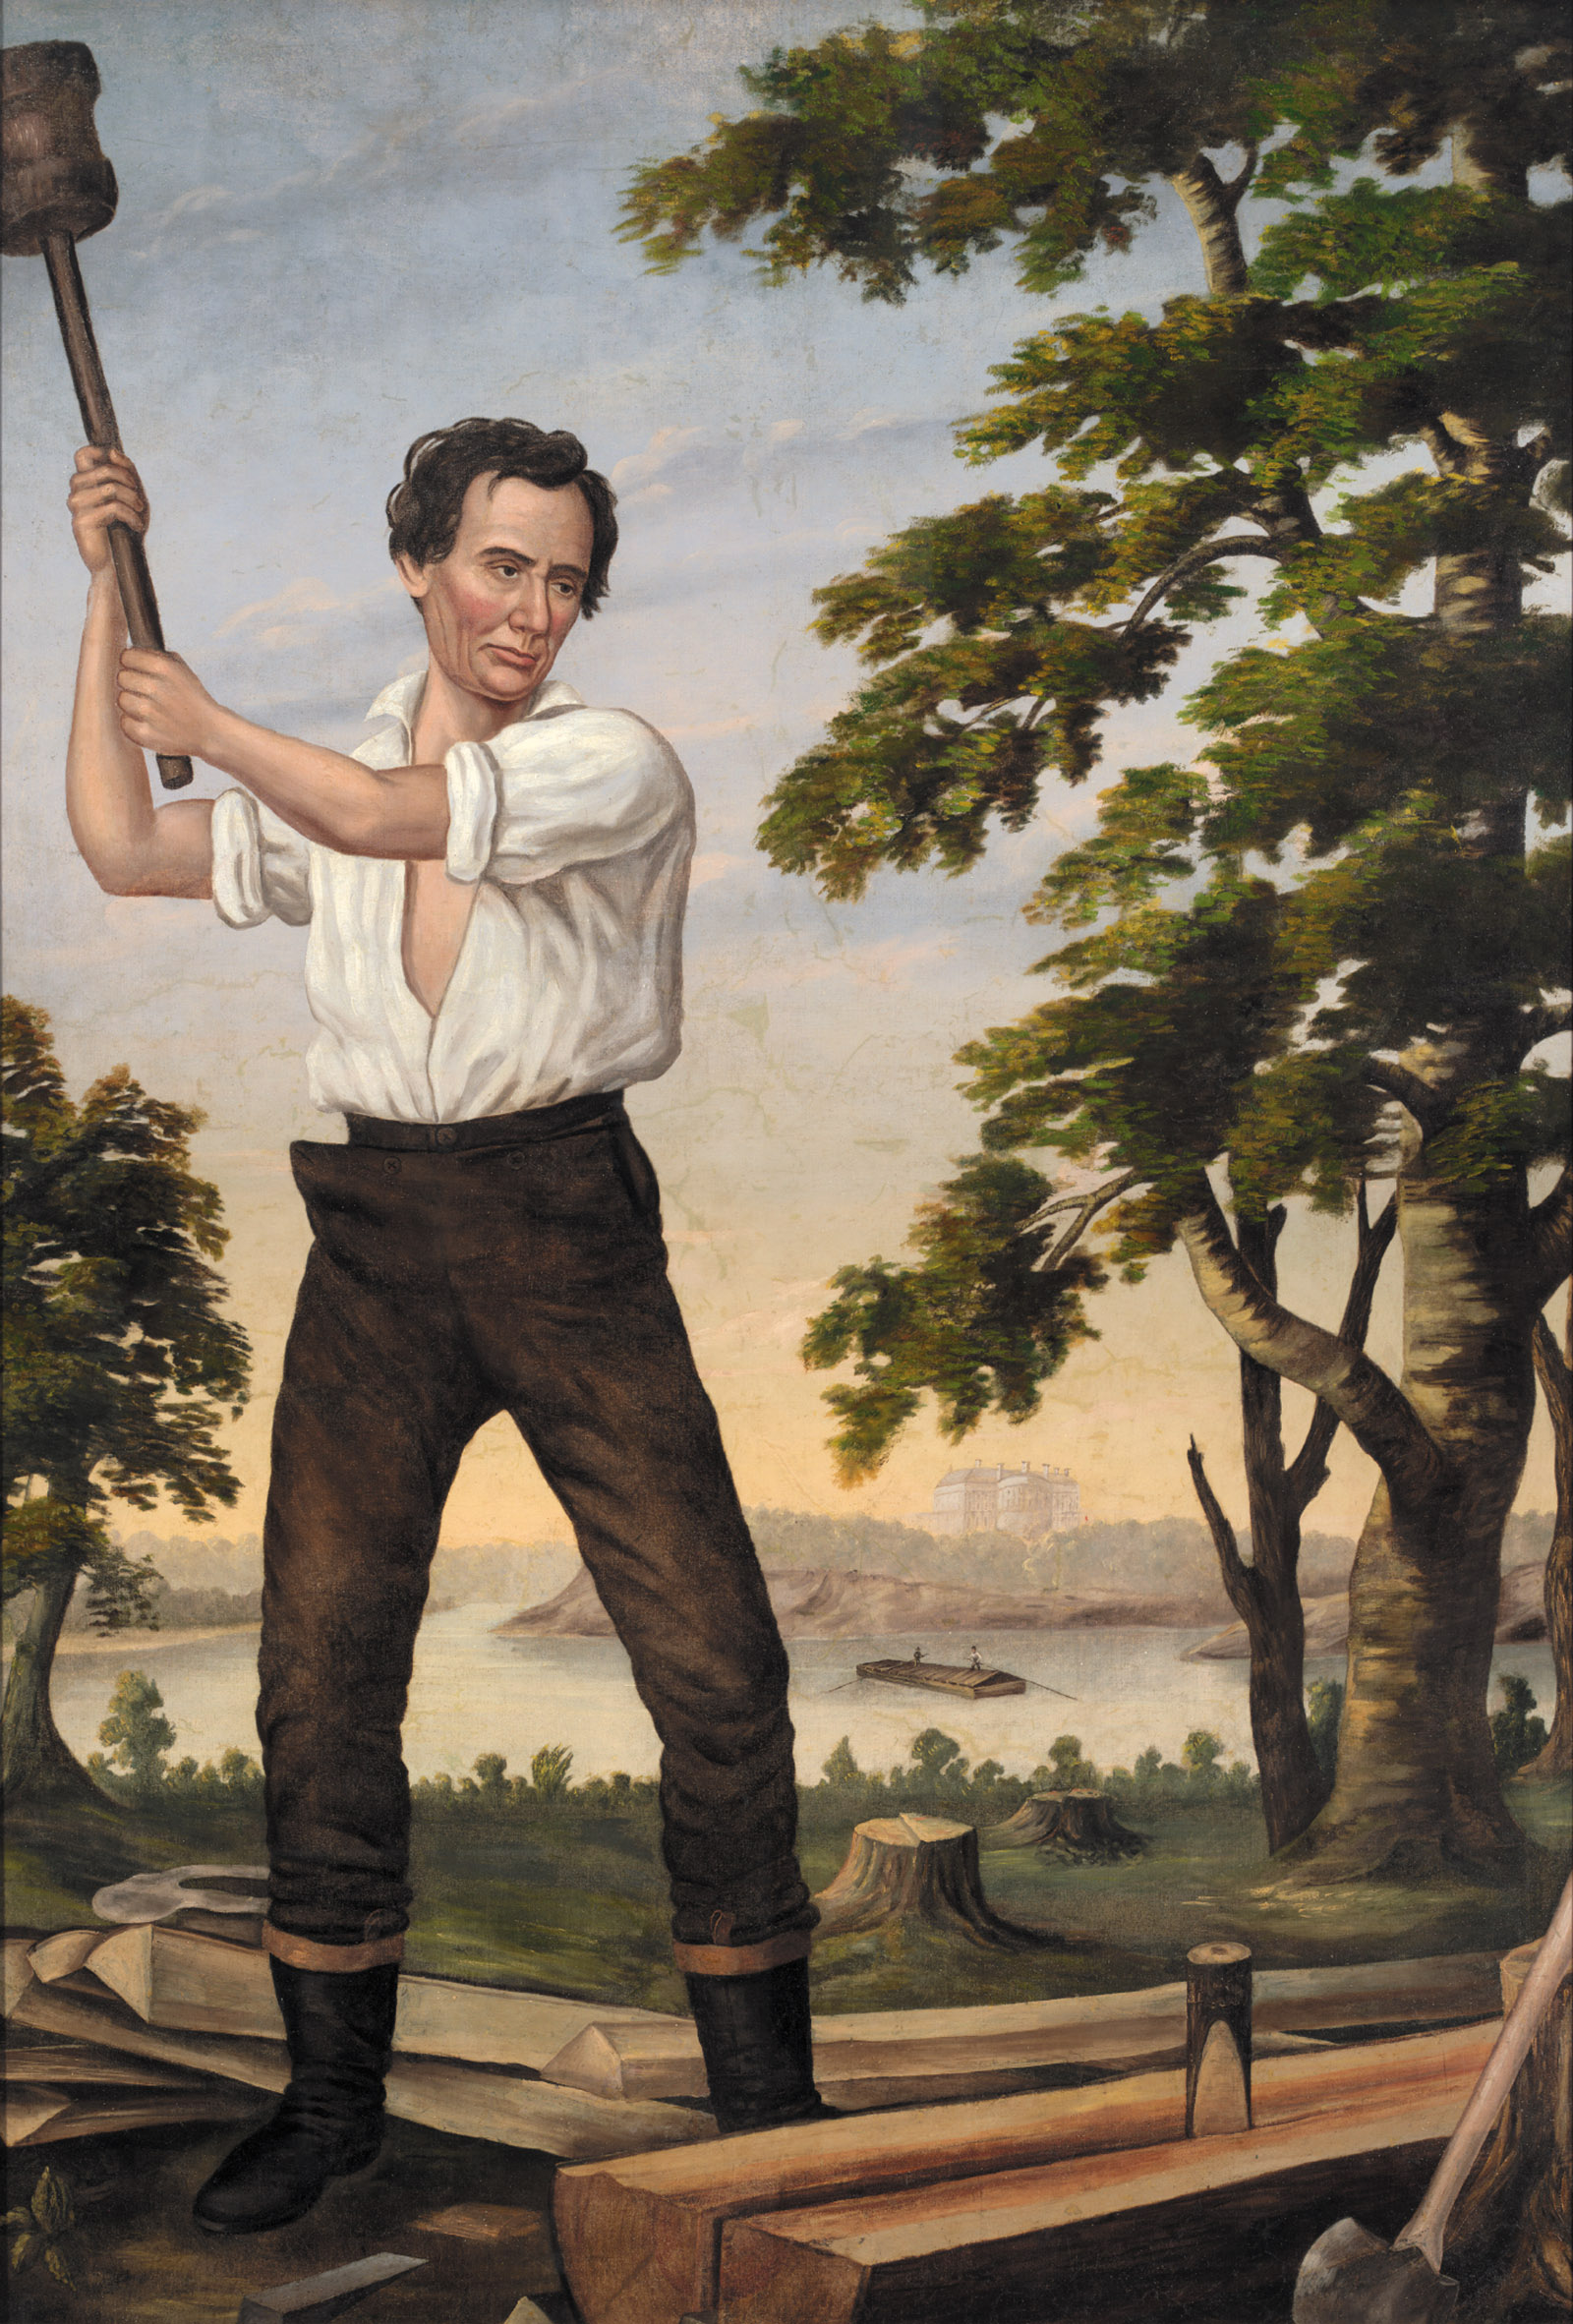 The Railsplitter, a painting of Abraham Lincoln displayed at his rallies